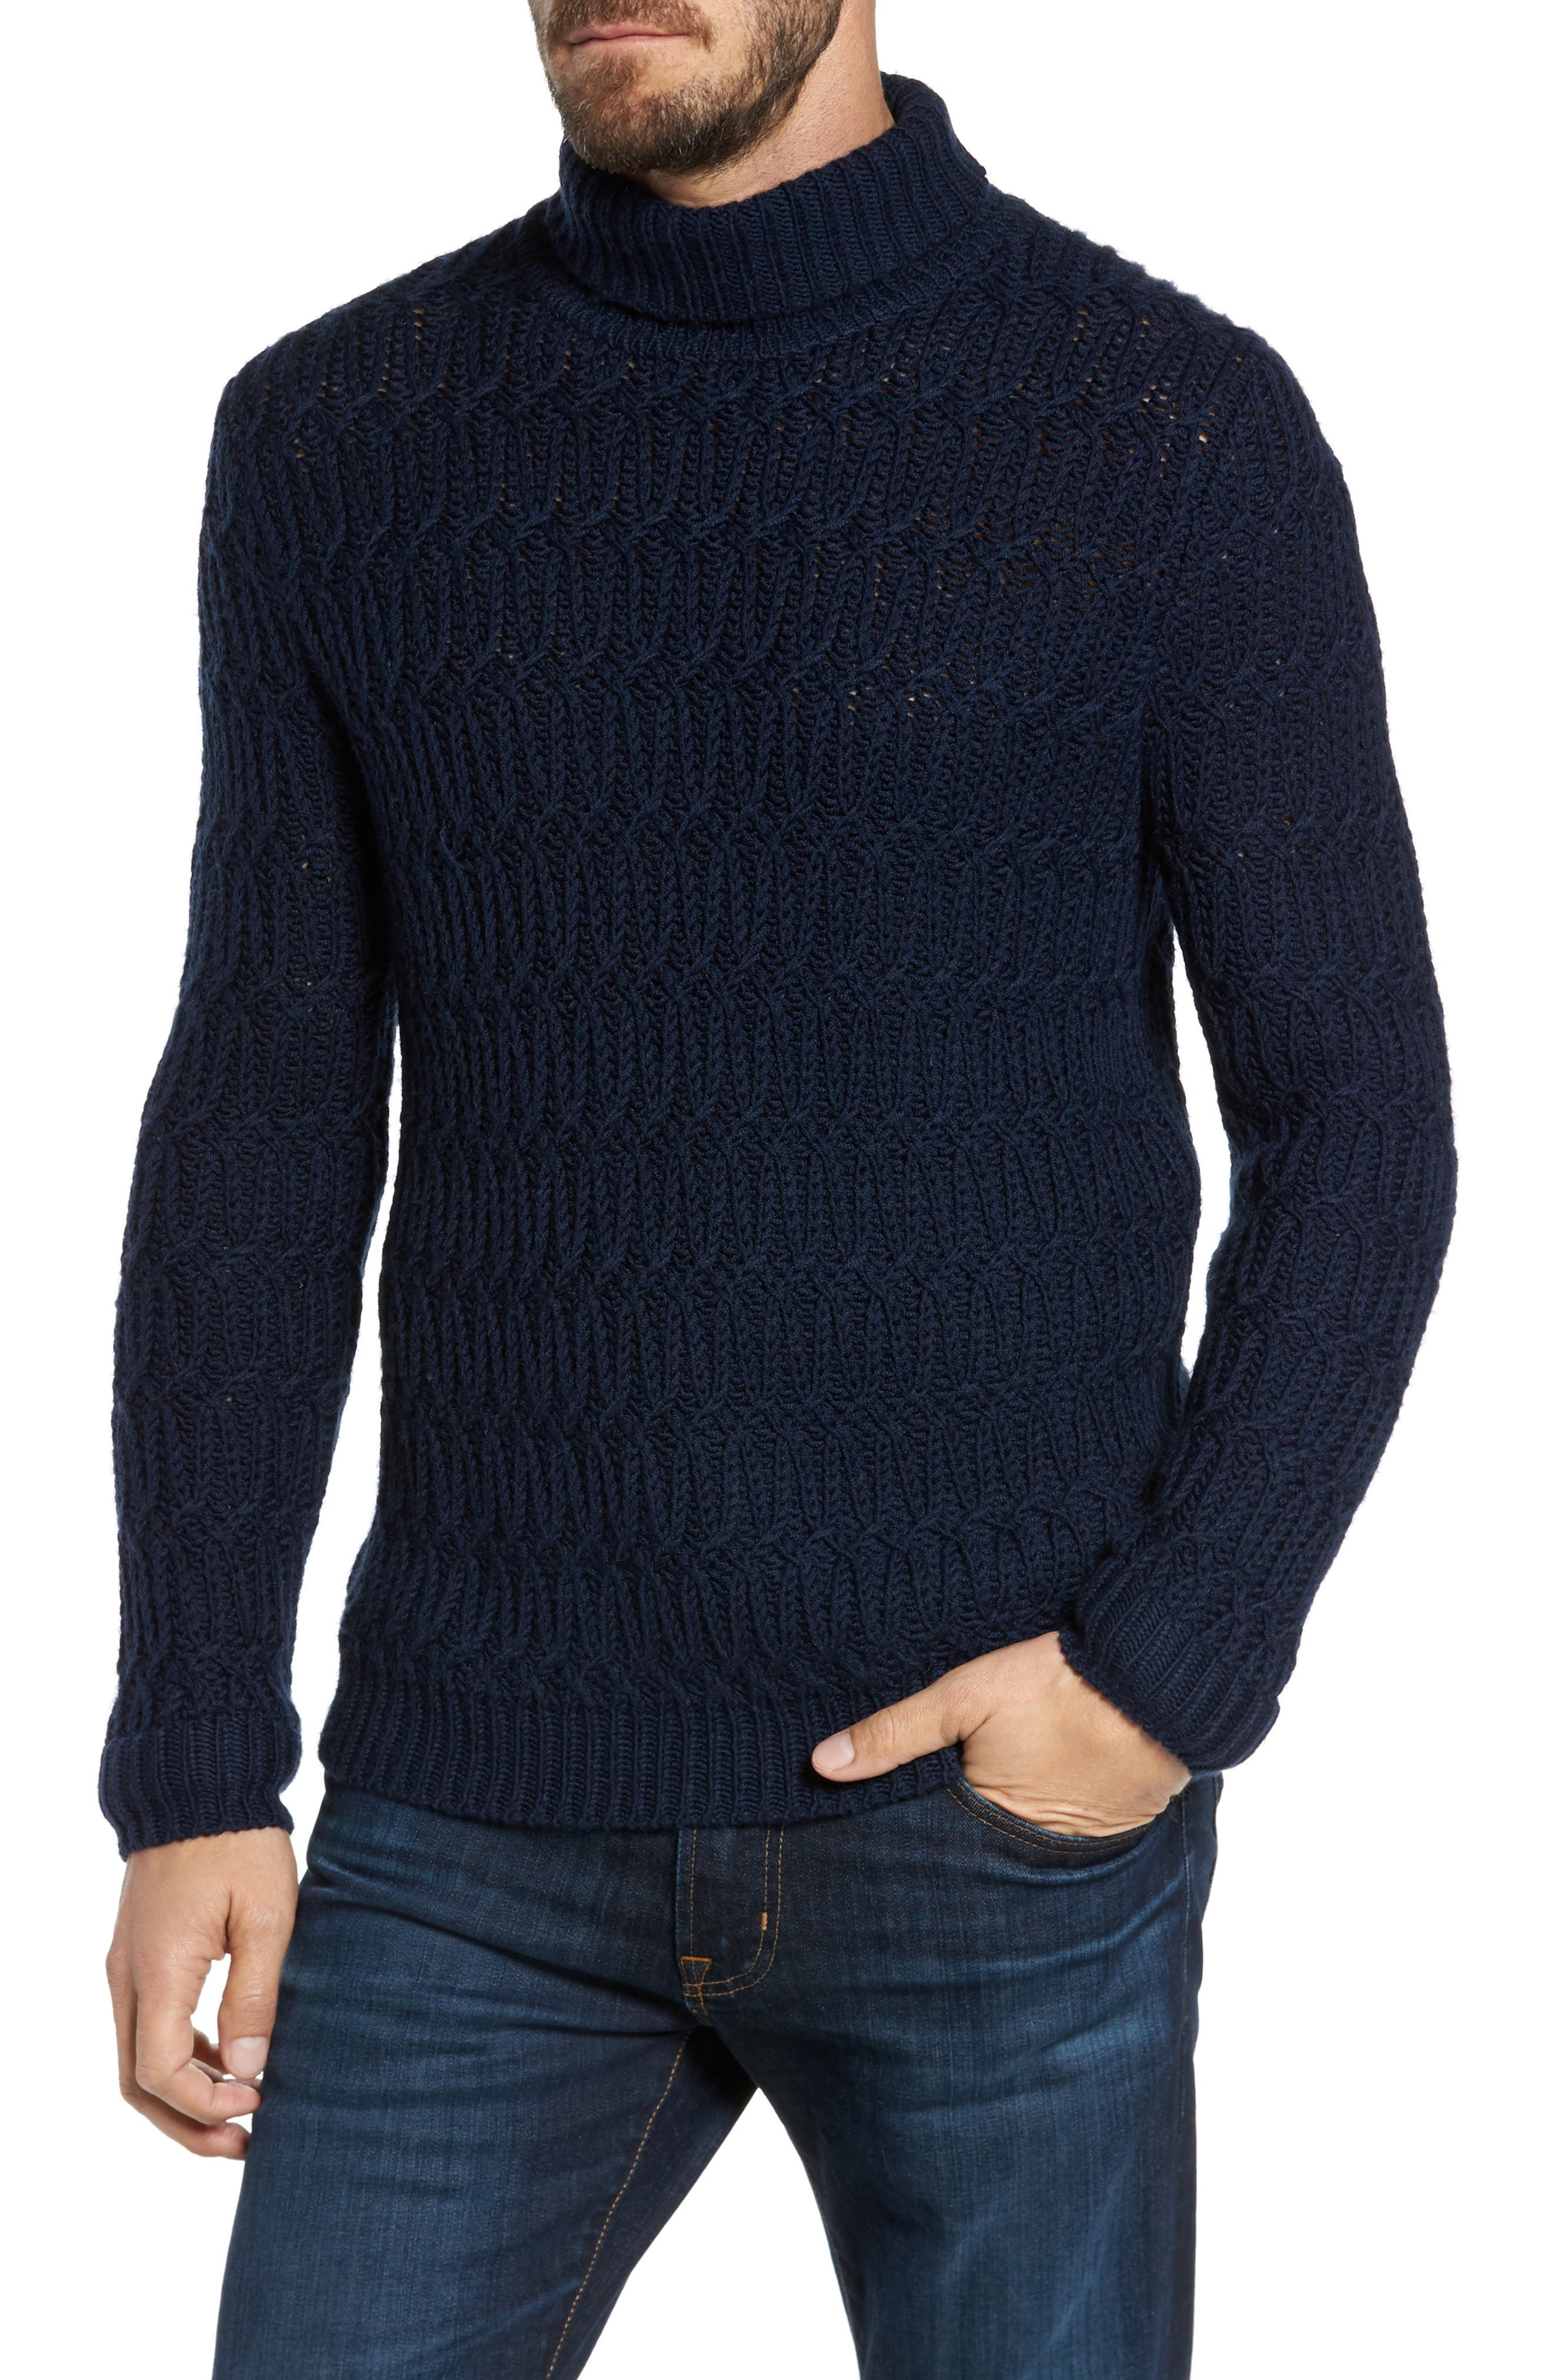 Chunky Turtleneck Sweater,                         Main,                         color, 410